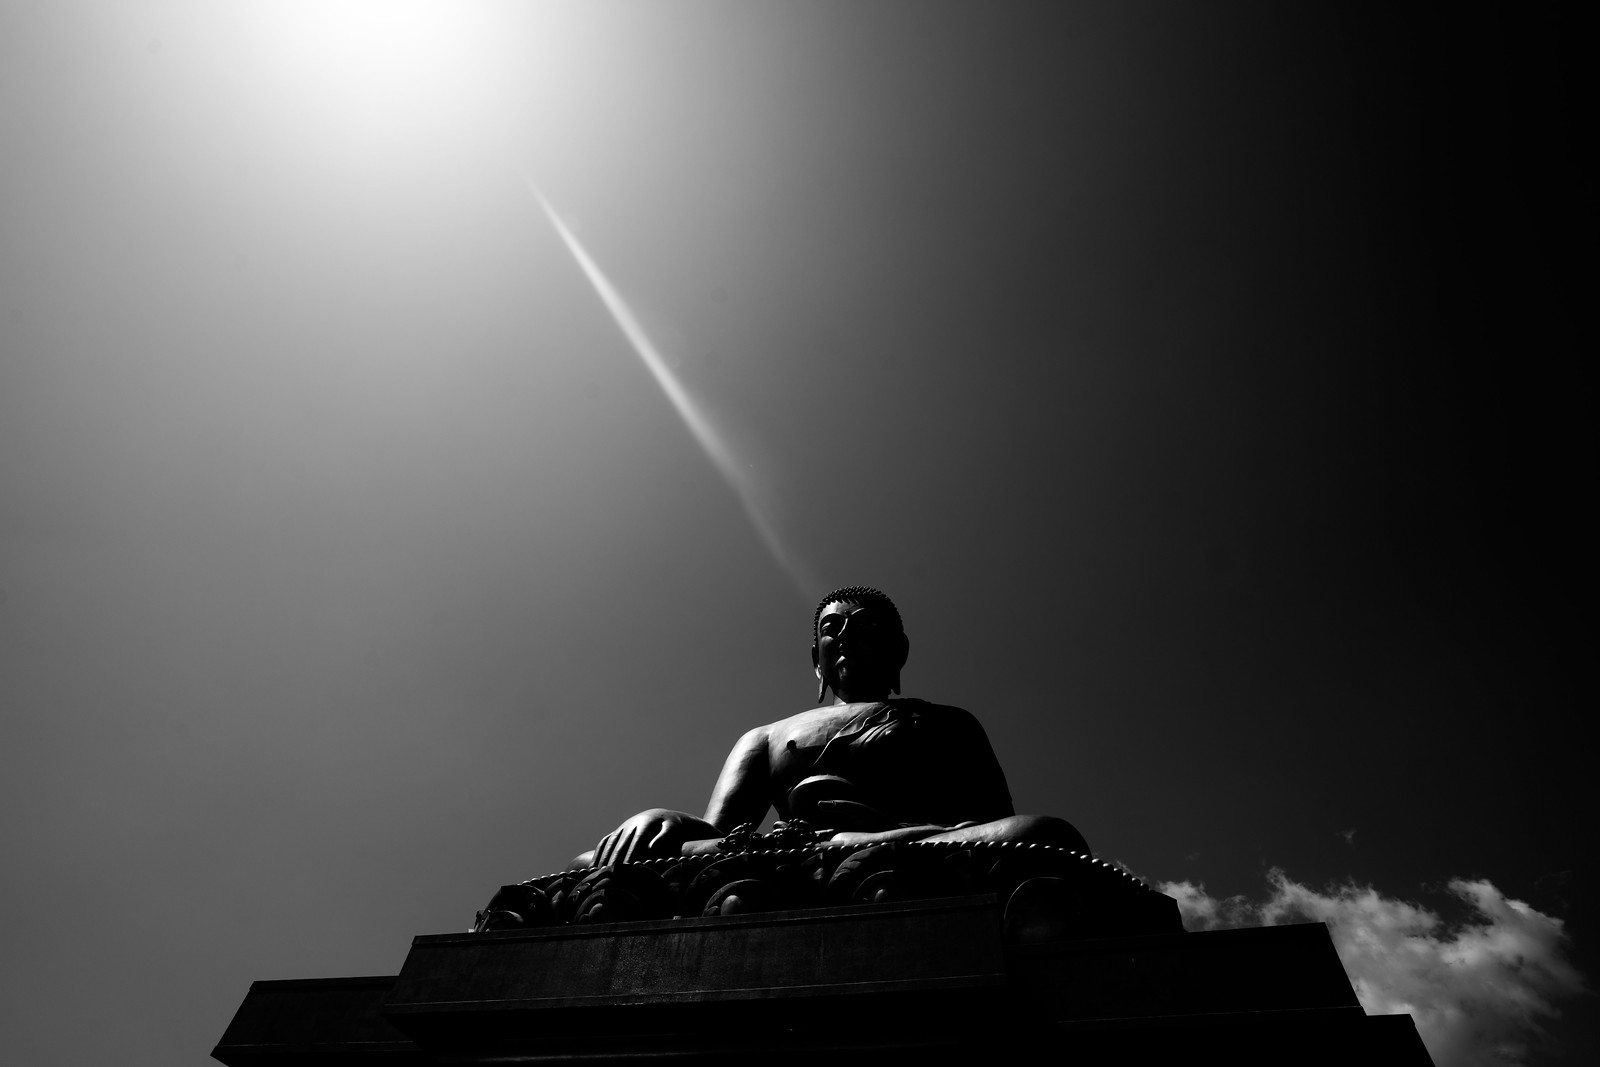 The enlightened Buddha